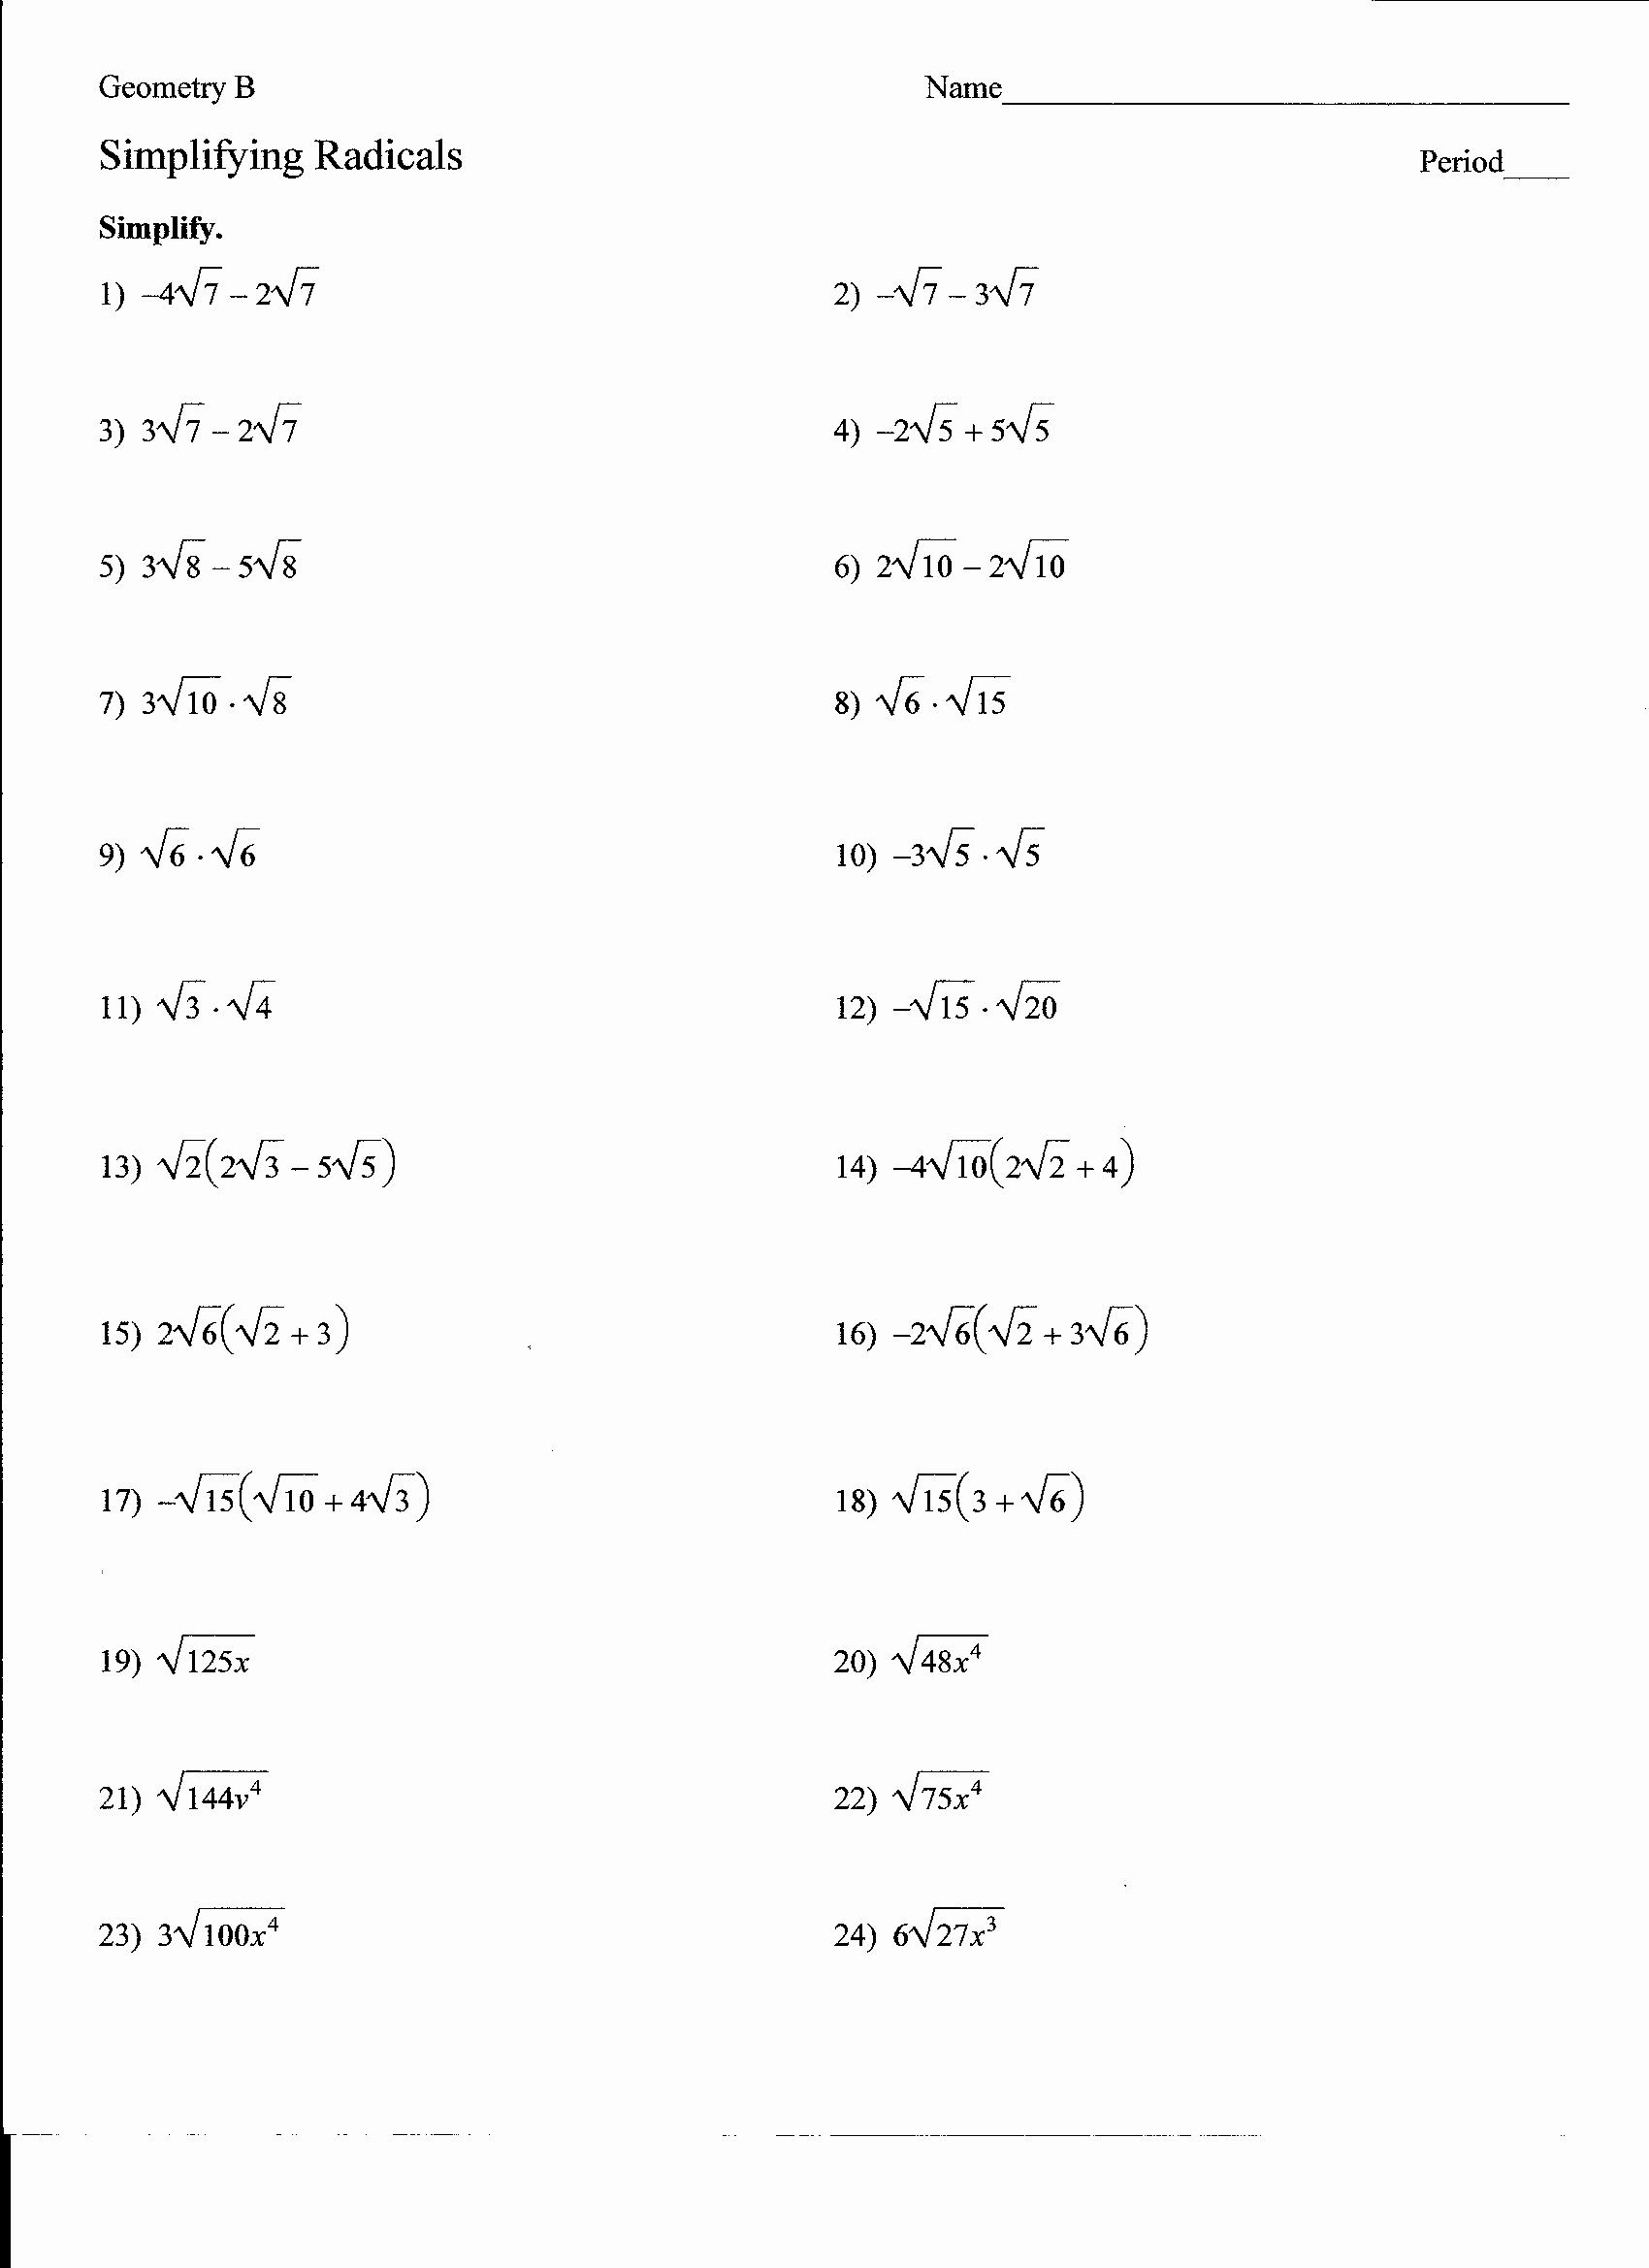 50 Simplifying Radicals Worksheet